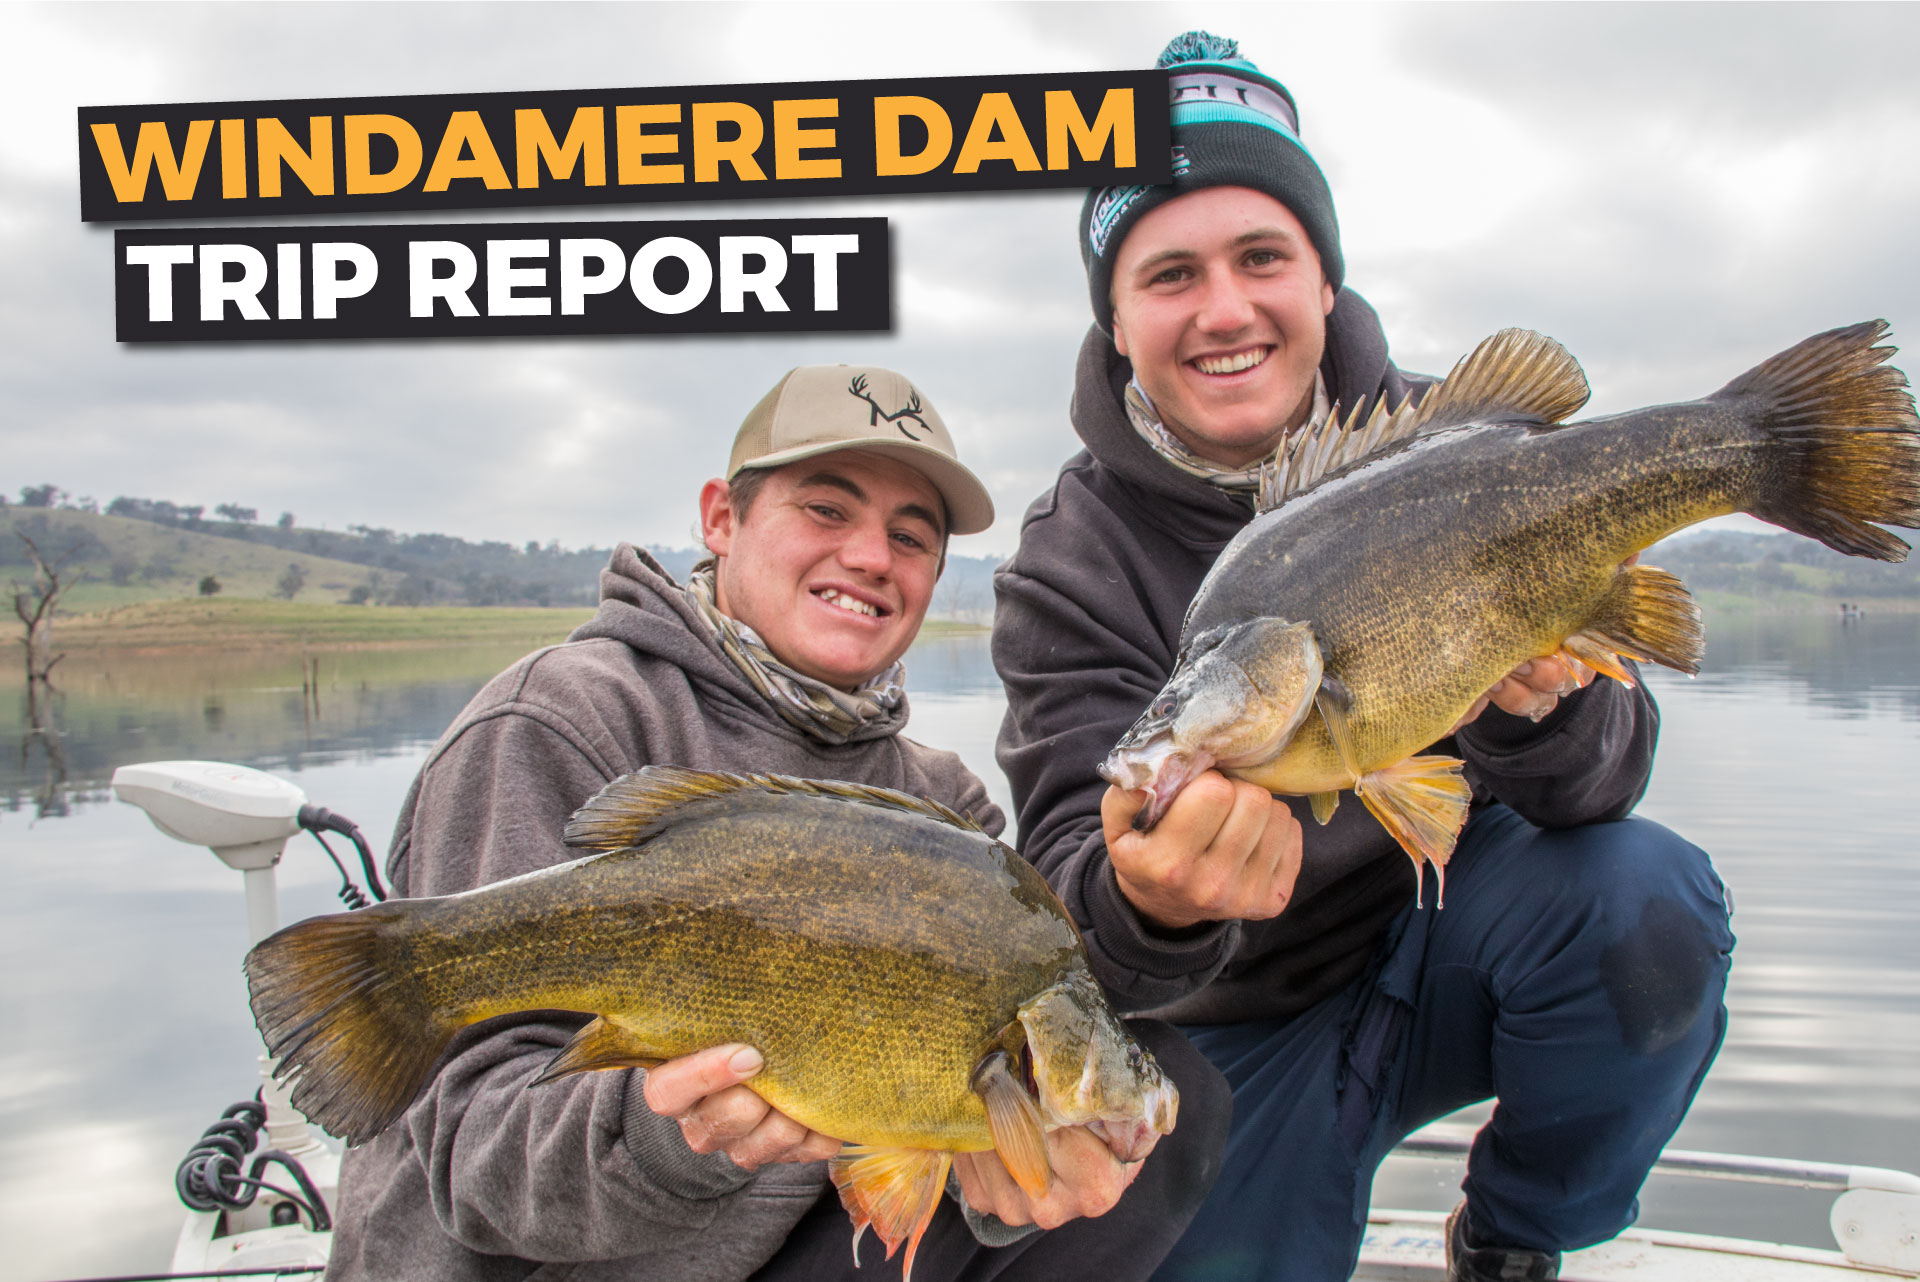 How We Caught 117 Golden Perch On Our Trip To Windamere…